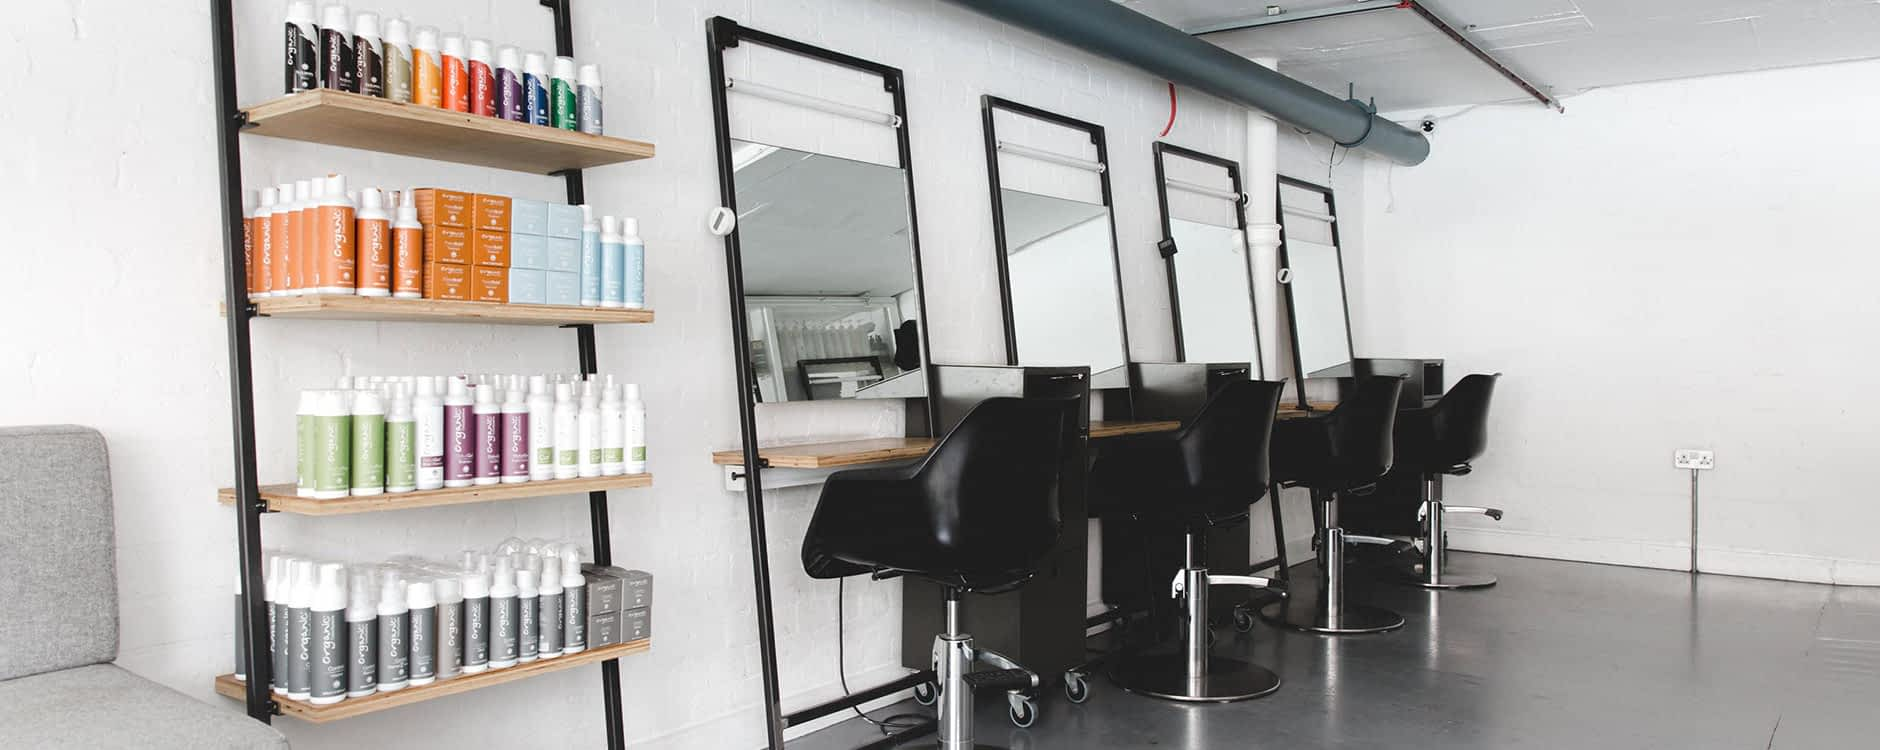 Glasshouse Salon, Netil House, Hackney, East London. Organic hair care